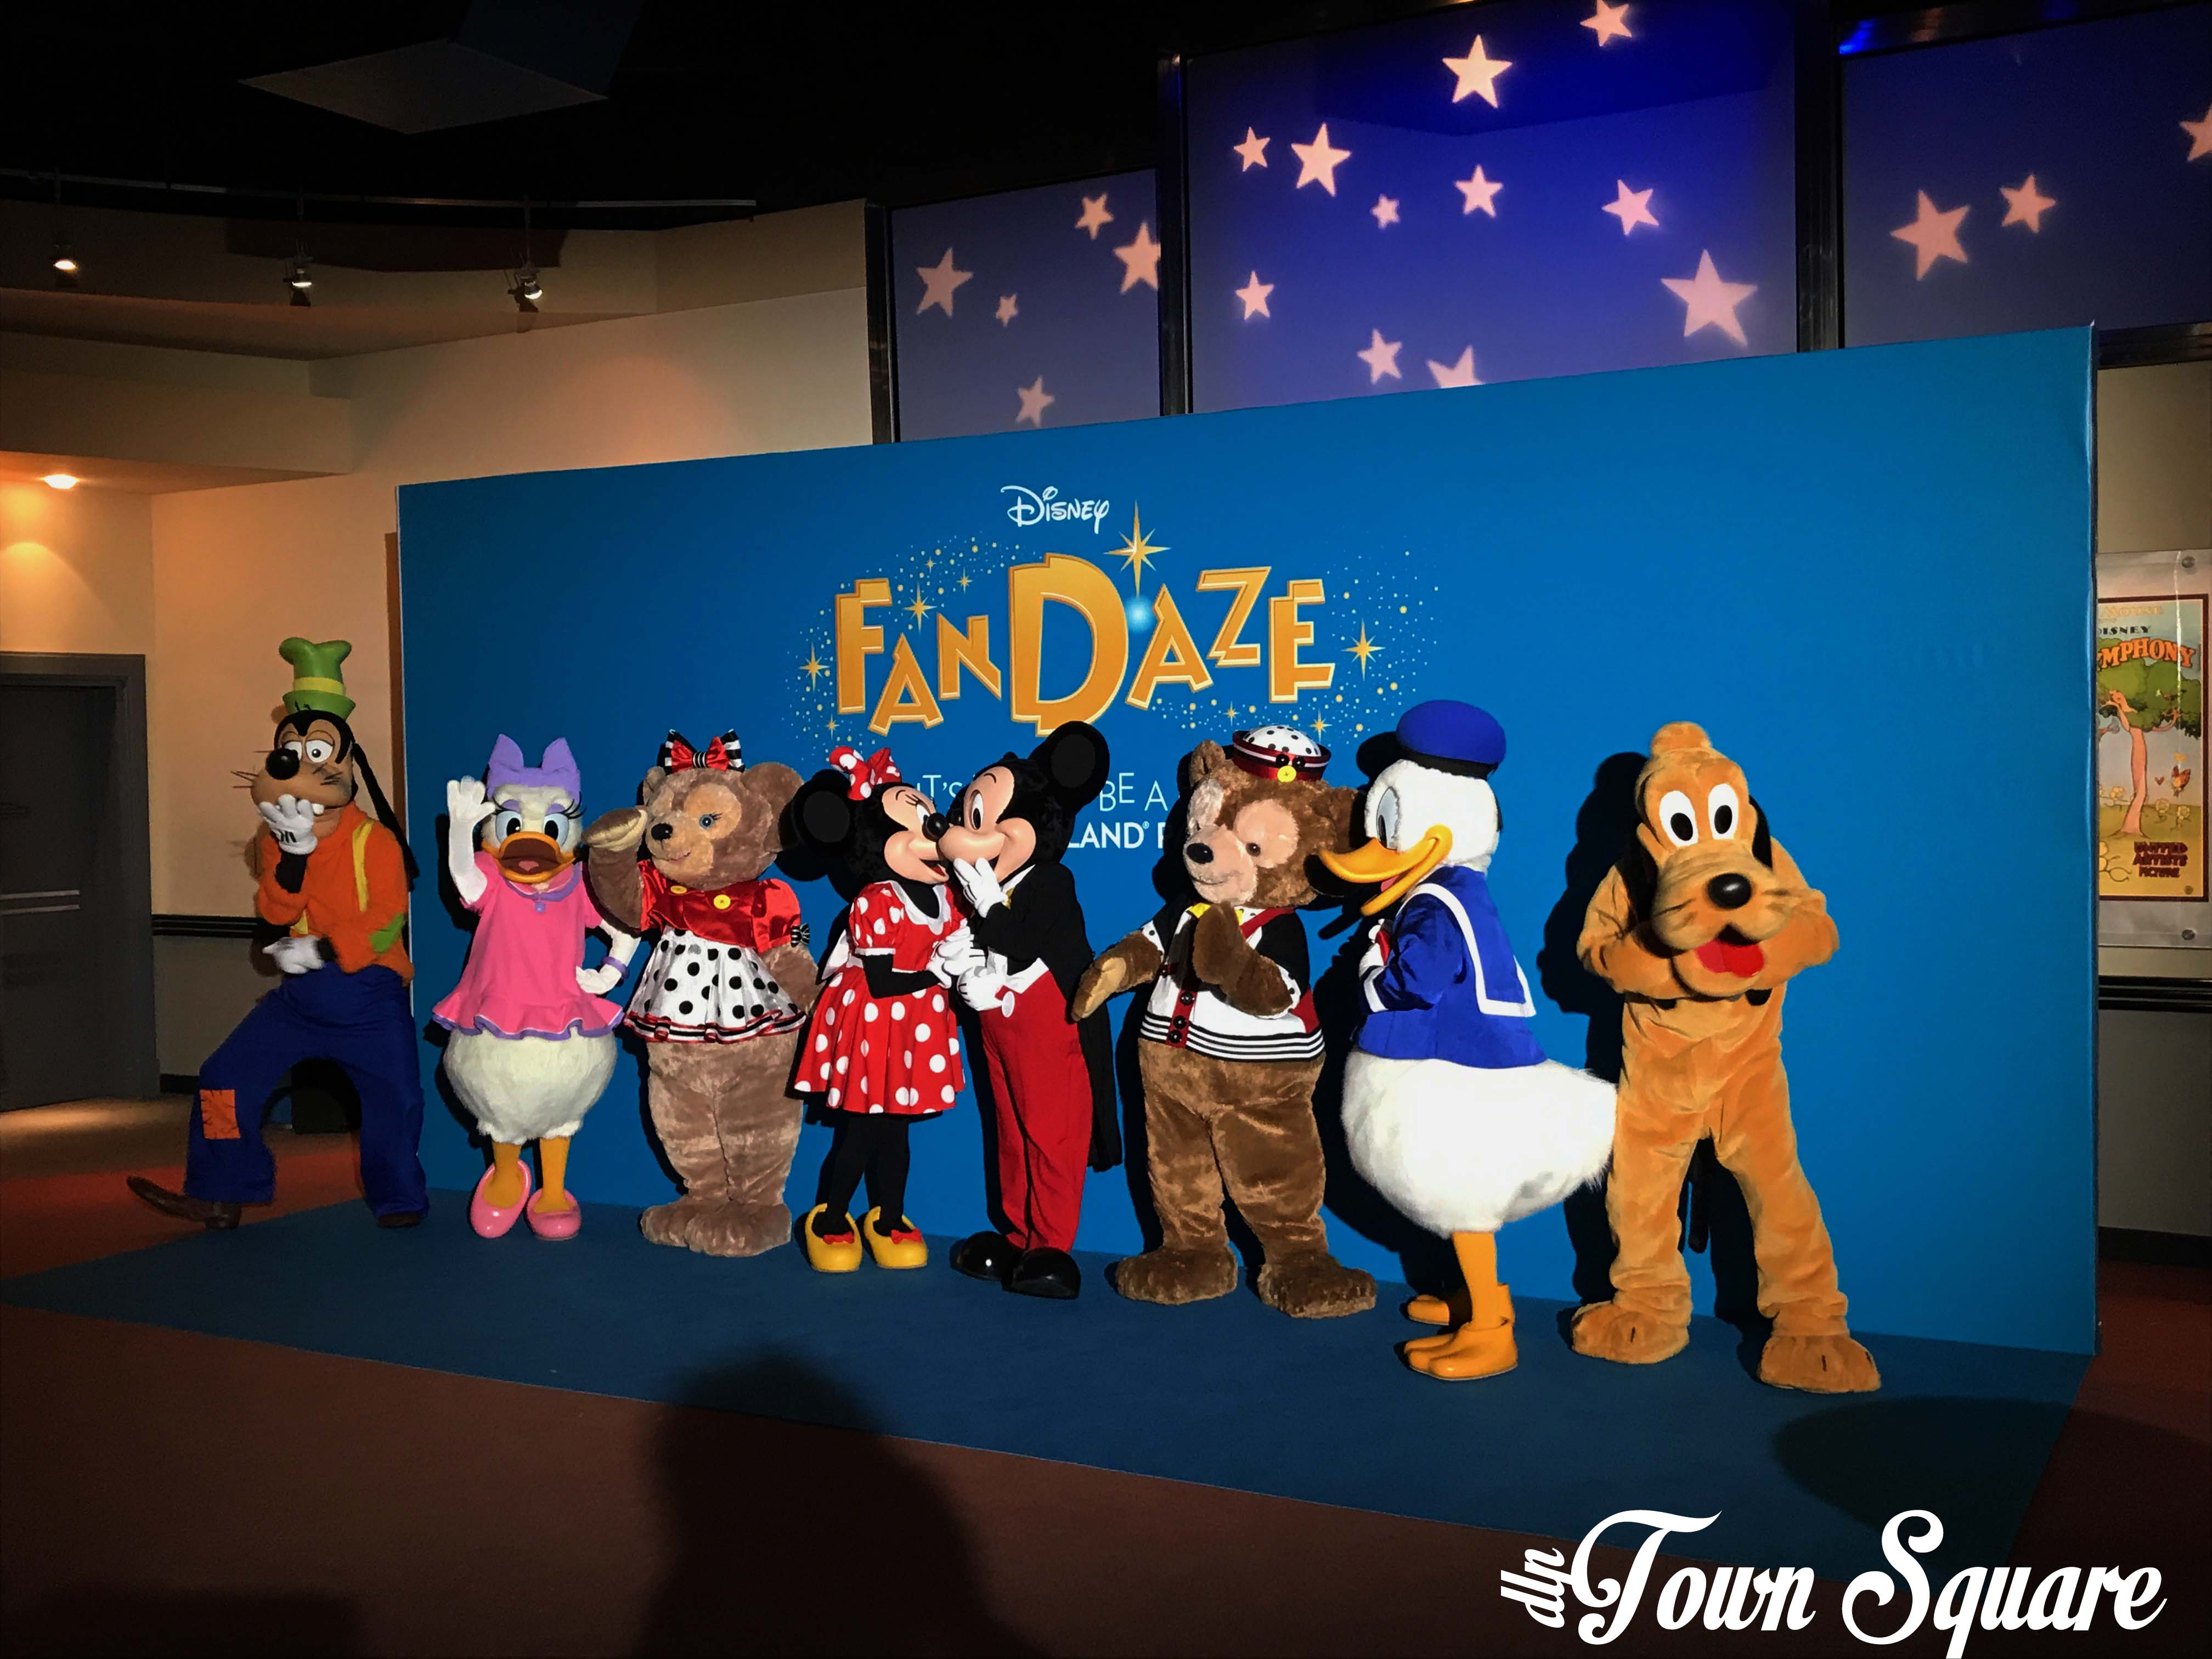 The Disney FanDaze Characters